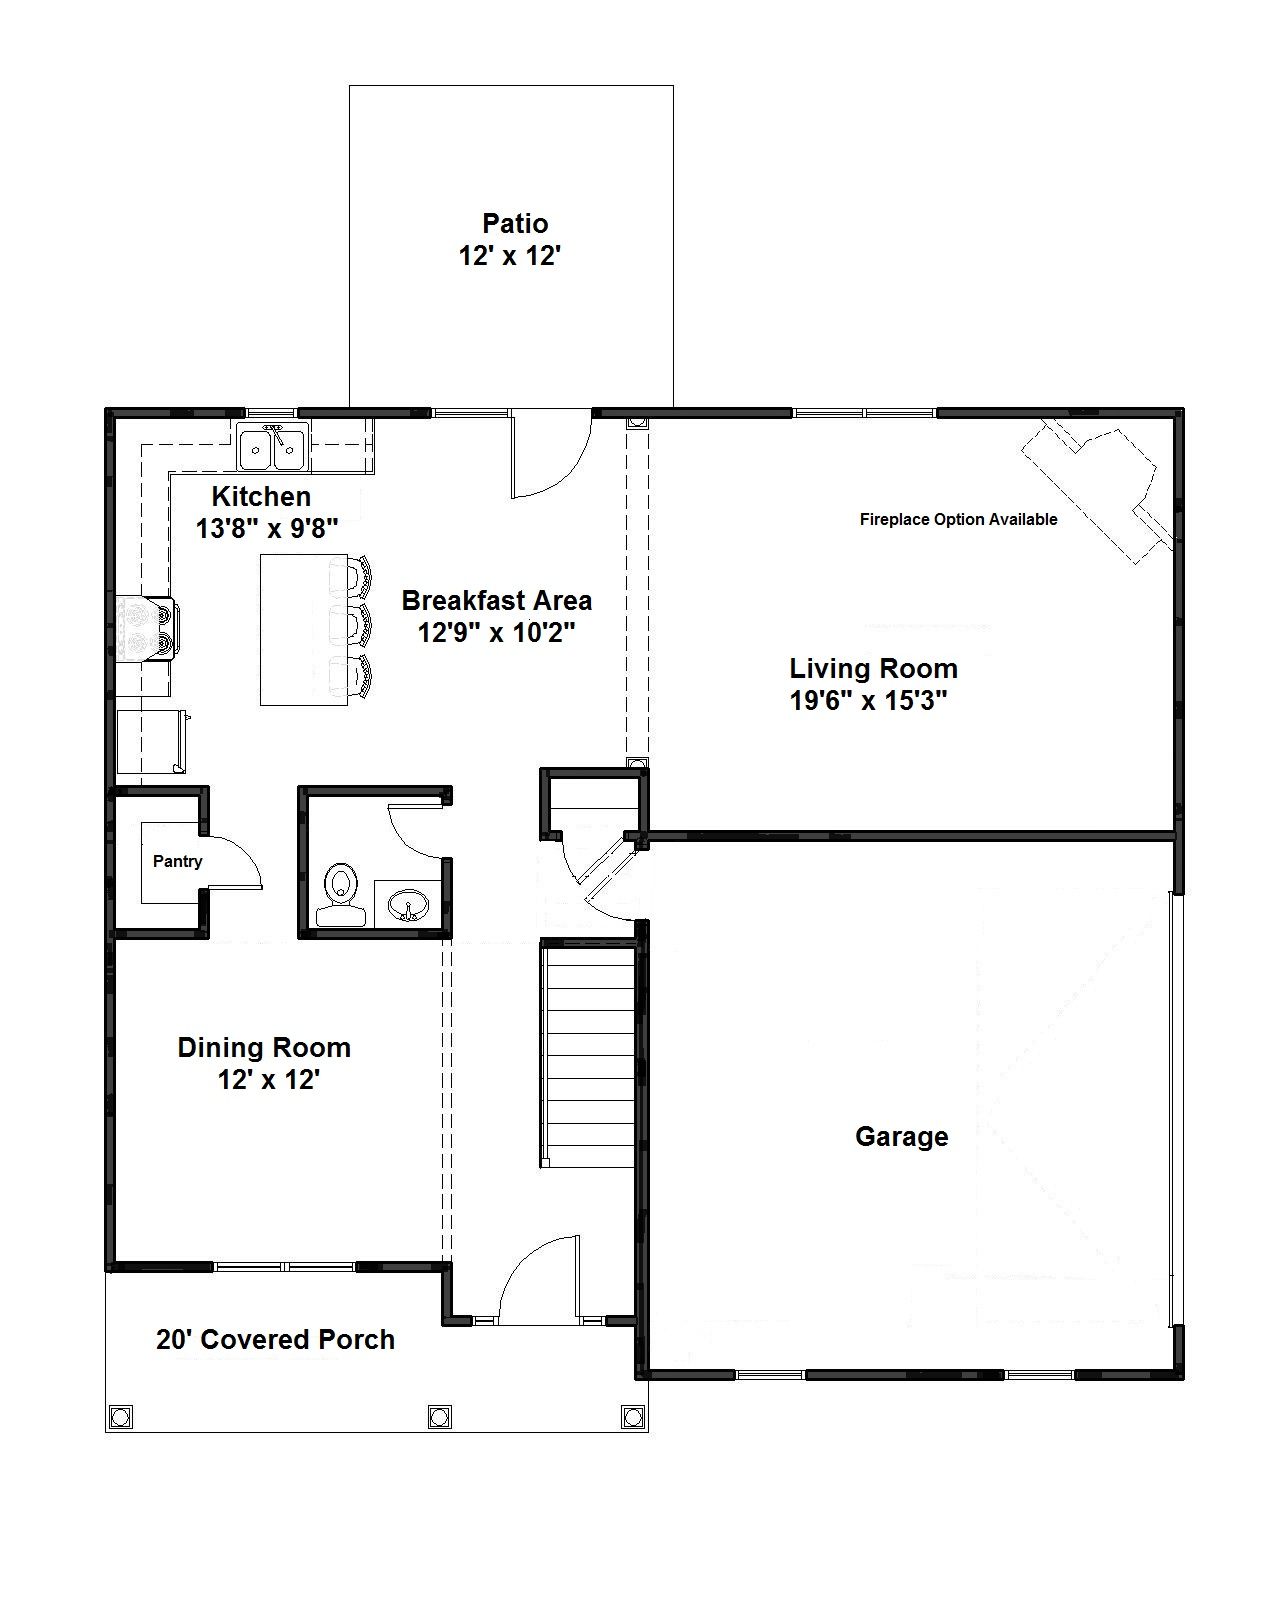 Link to First Floor Plans